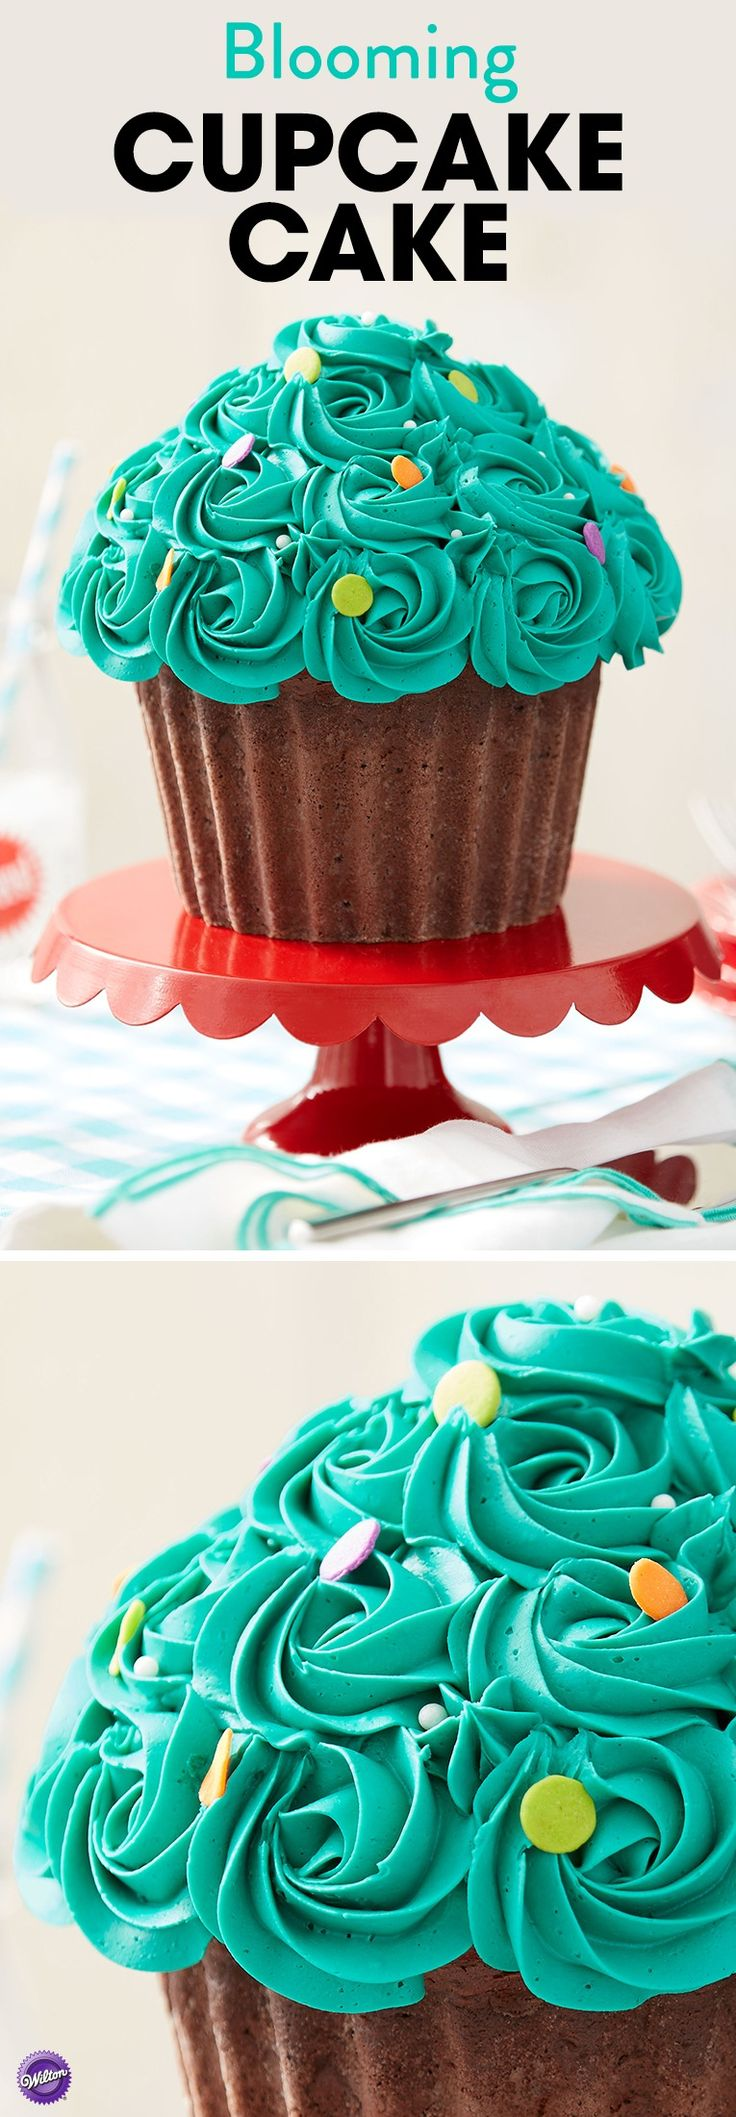 What's better than a cupcake? A giant cupcake! Just in time for your Easter and spring celebrations, this Blooming Cupcake Cake will be the hit of your party. Use the Dimensions Giant Cupcake Pan to easily create this cake.